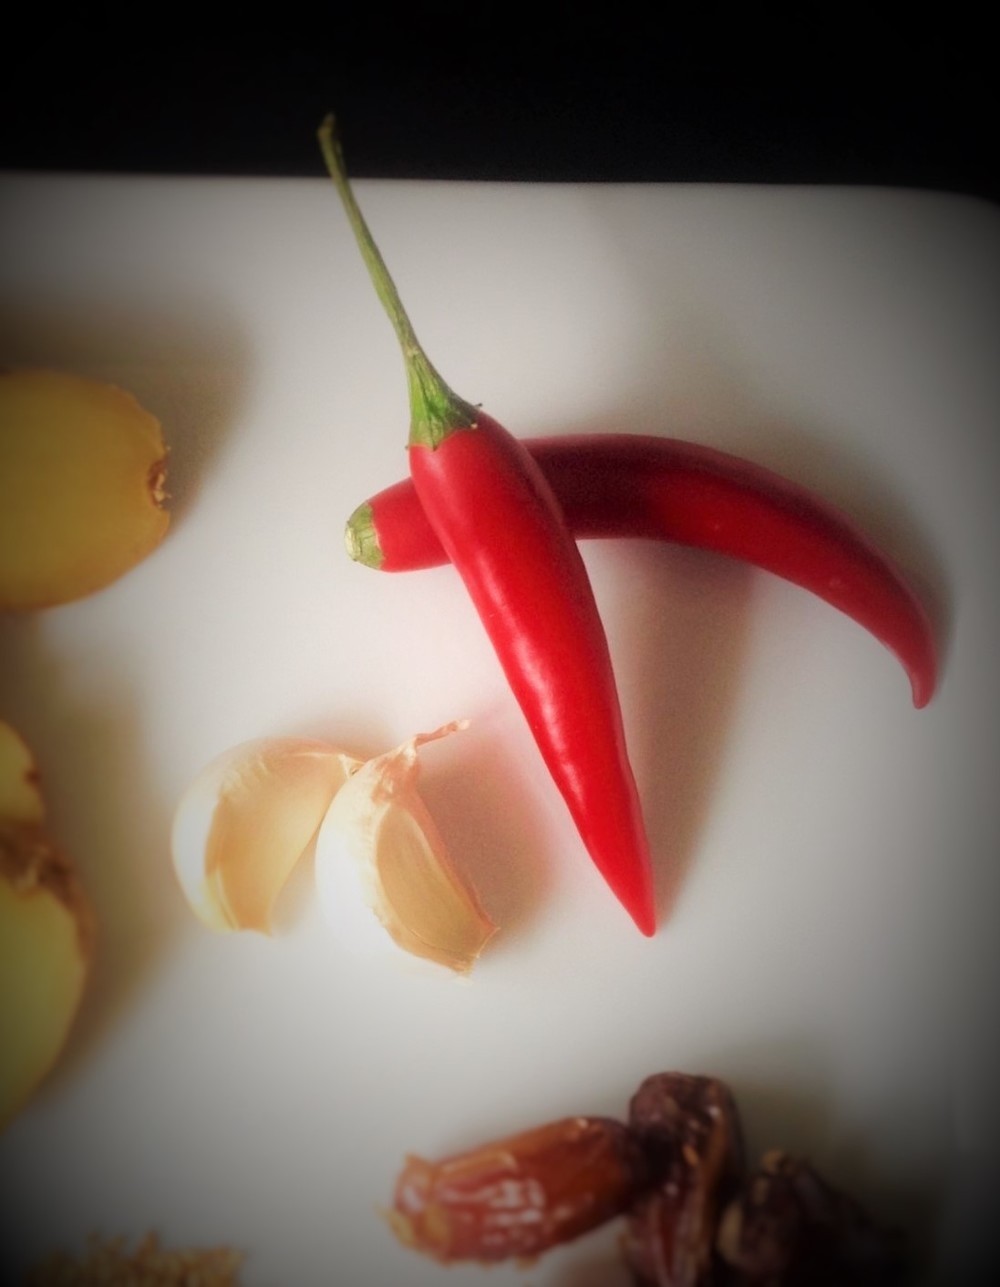 Red Chili Pepper for Spice